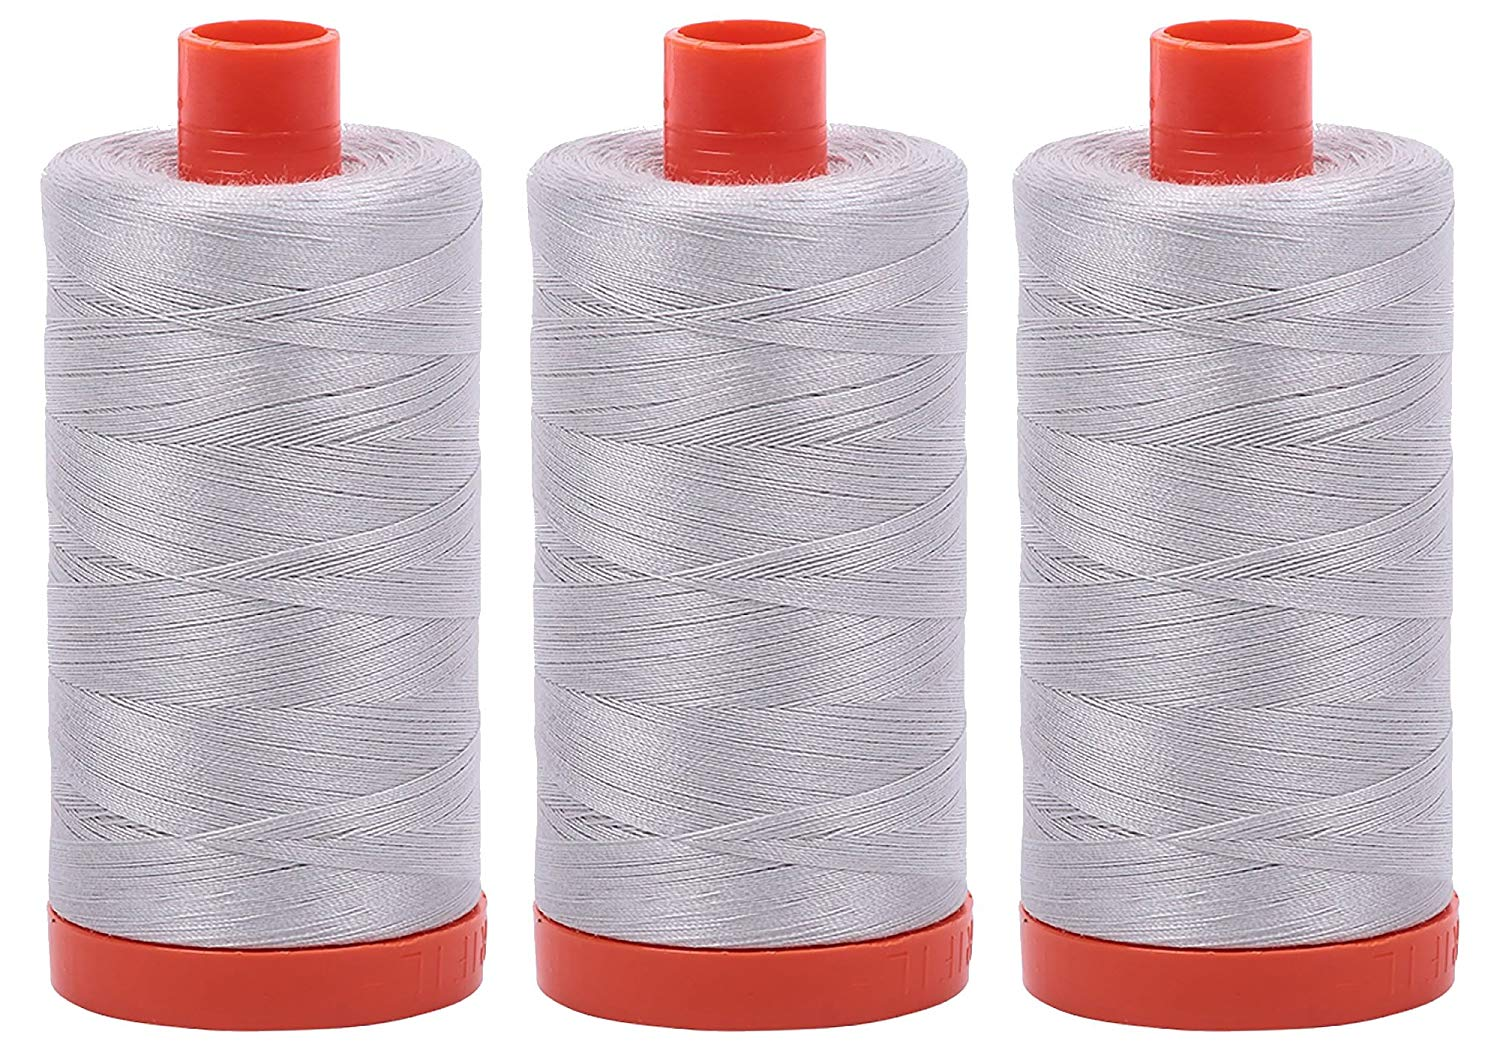 Aurifil Mako 50 wt Cotton Thread - Aluminum (2615) - Bundle of 3